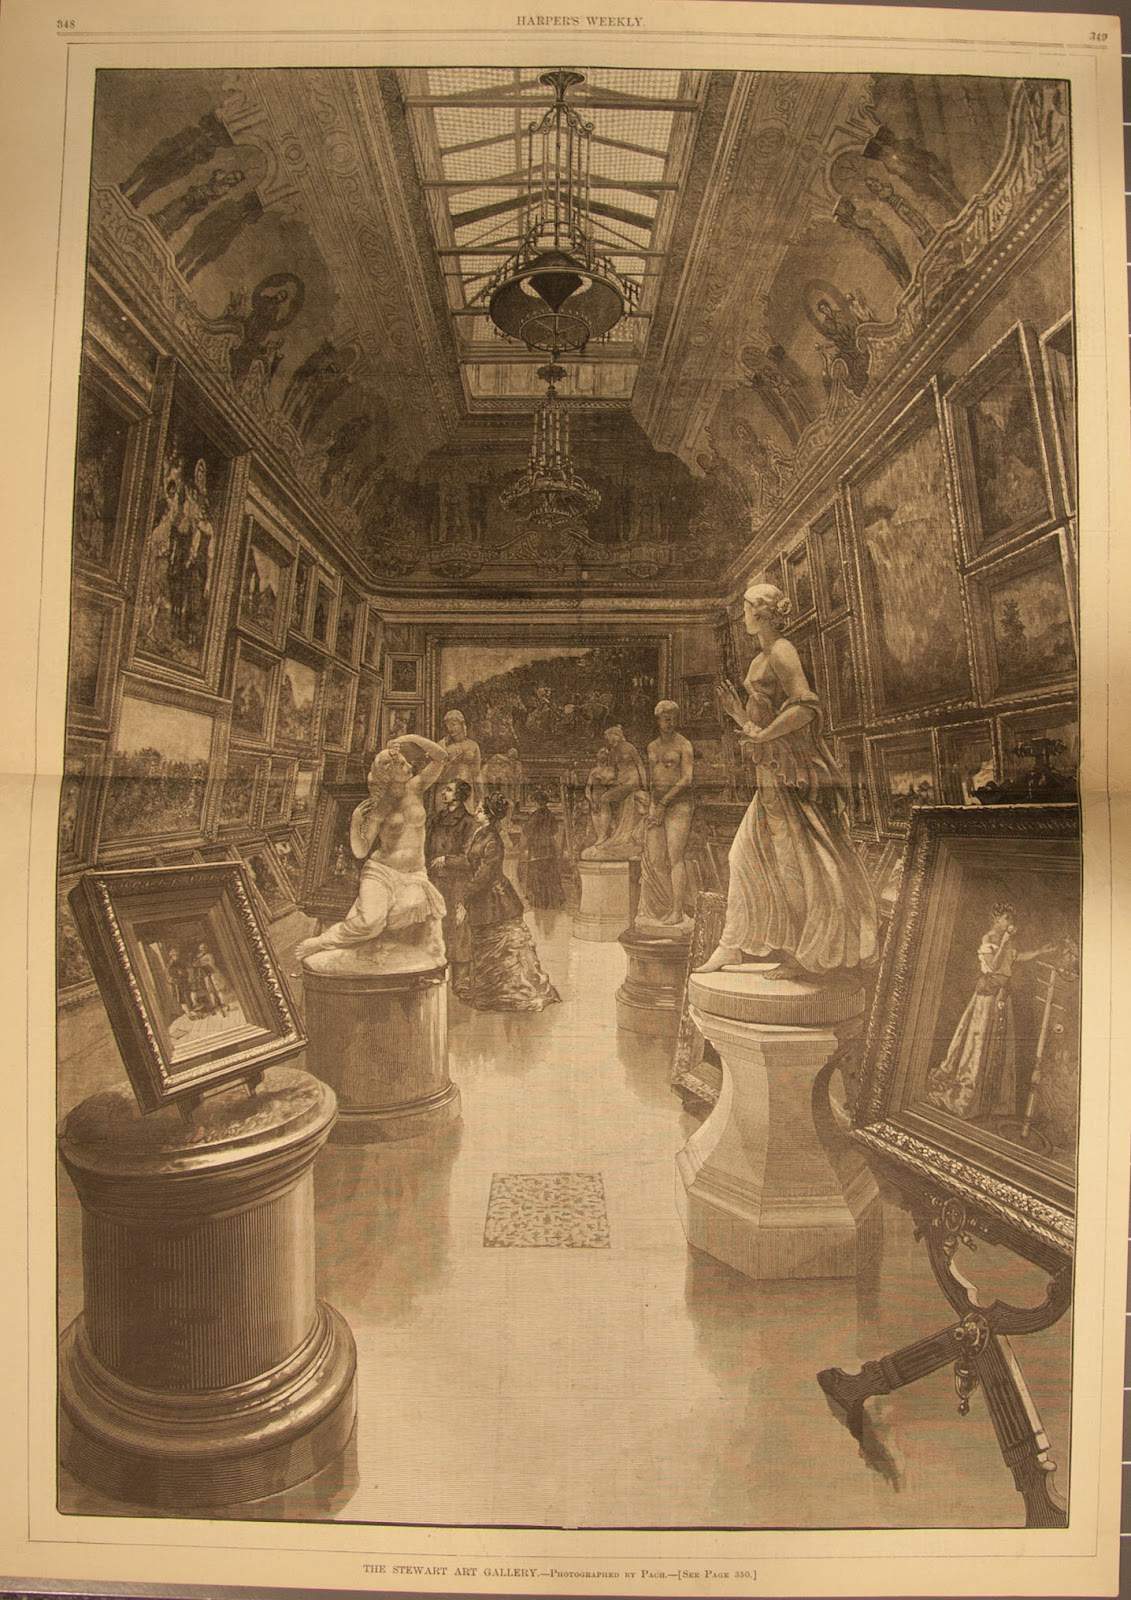 The Gilded Tarot Images On: The Gilded Age Era: William C. Whitney Mansion New York City